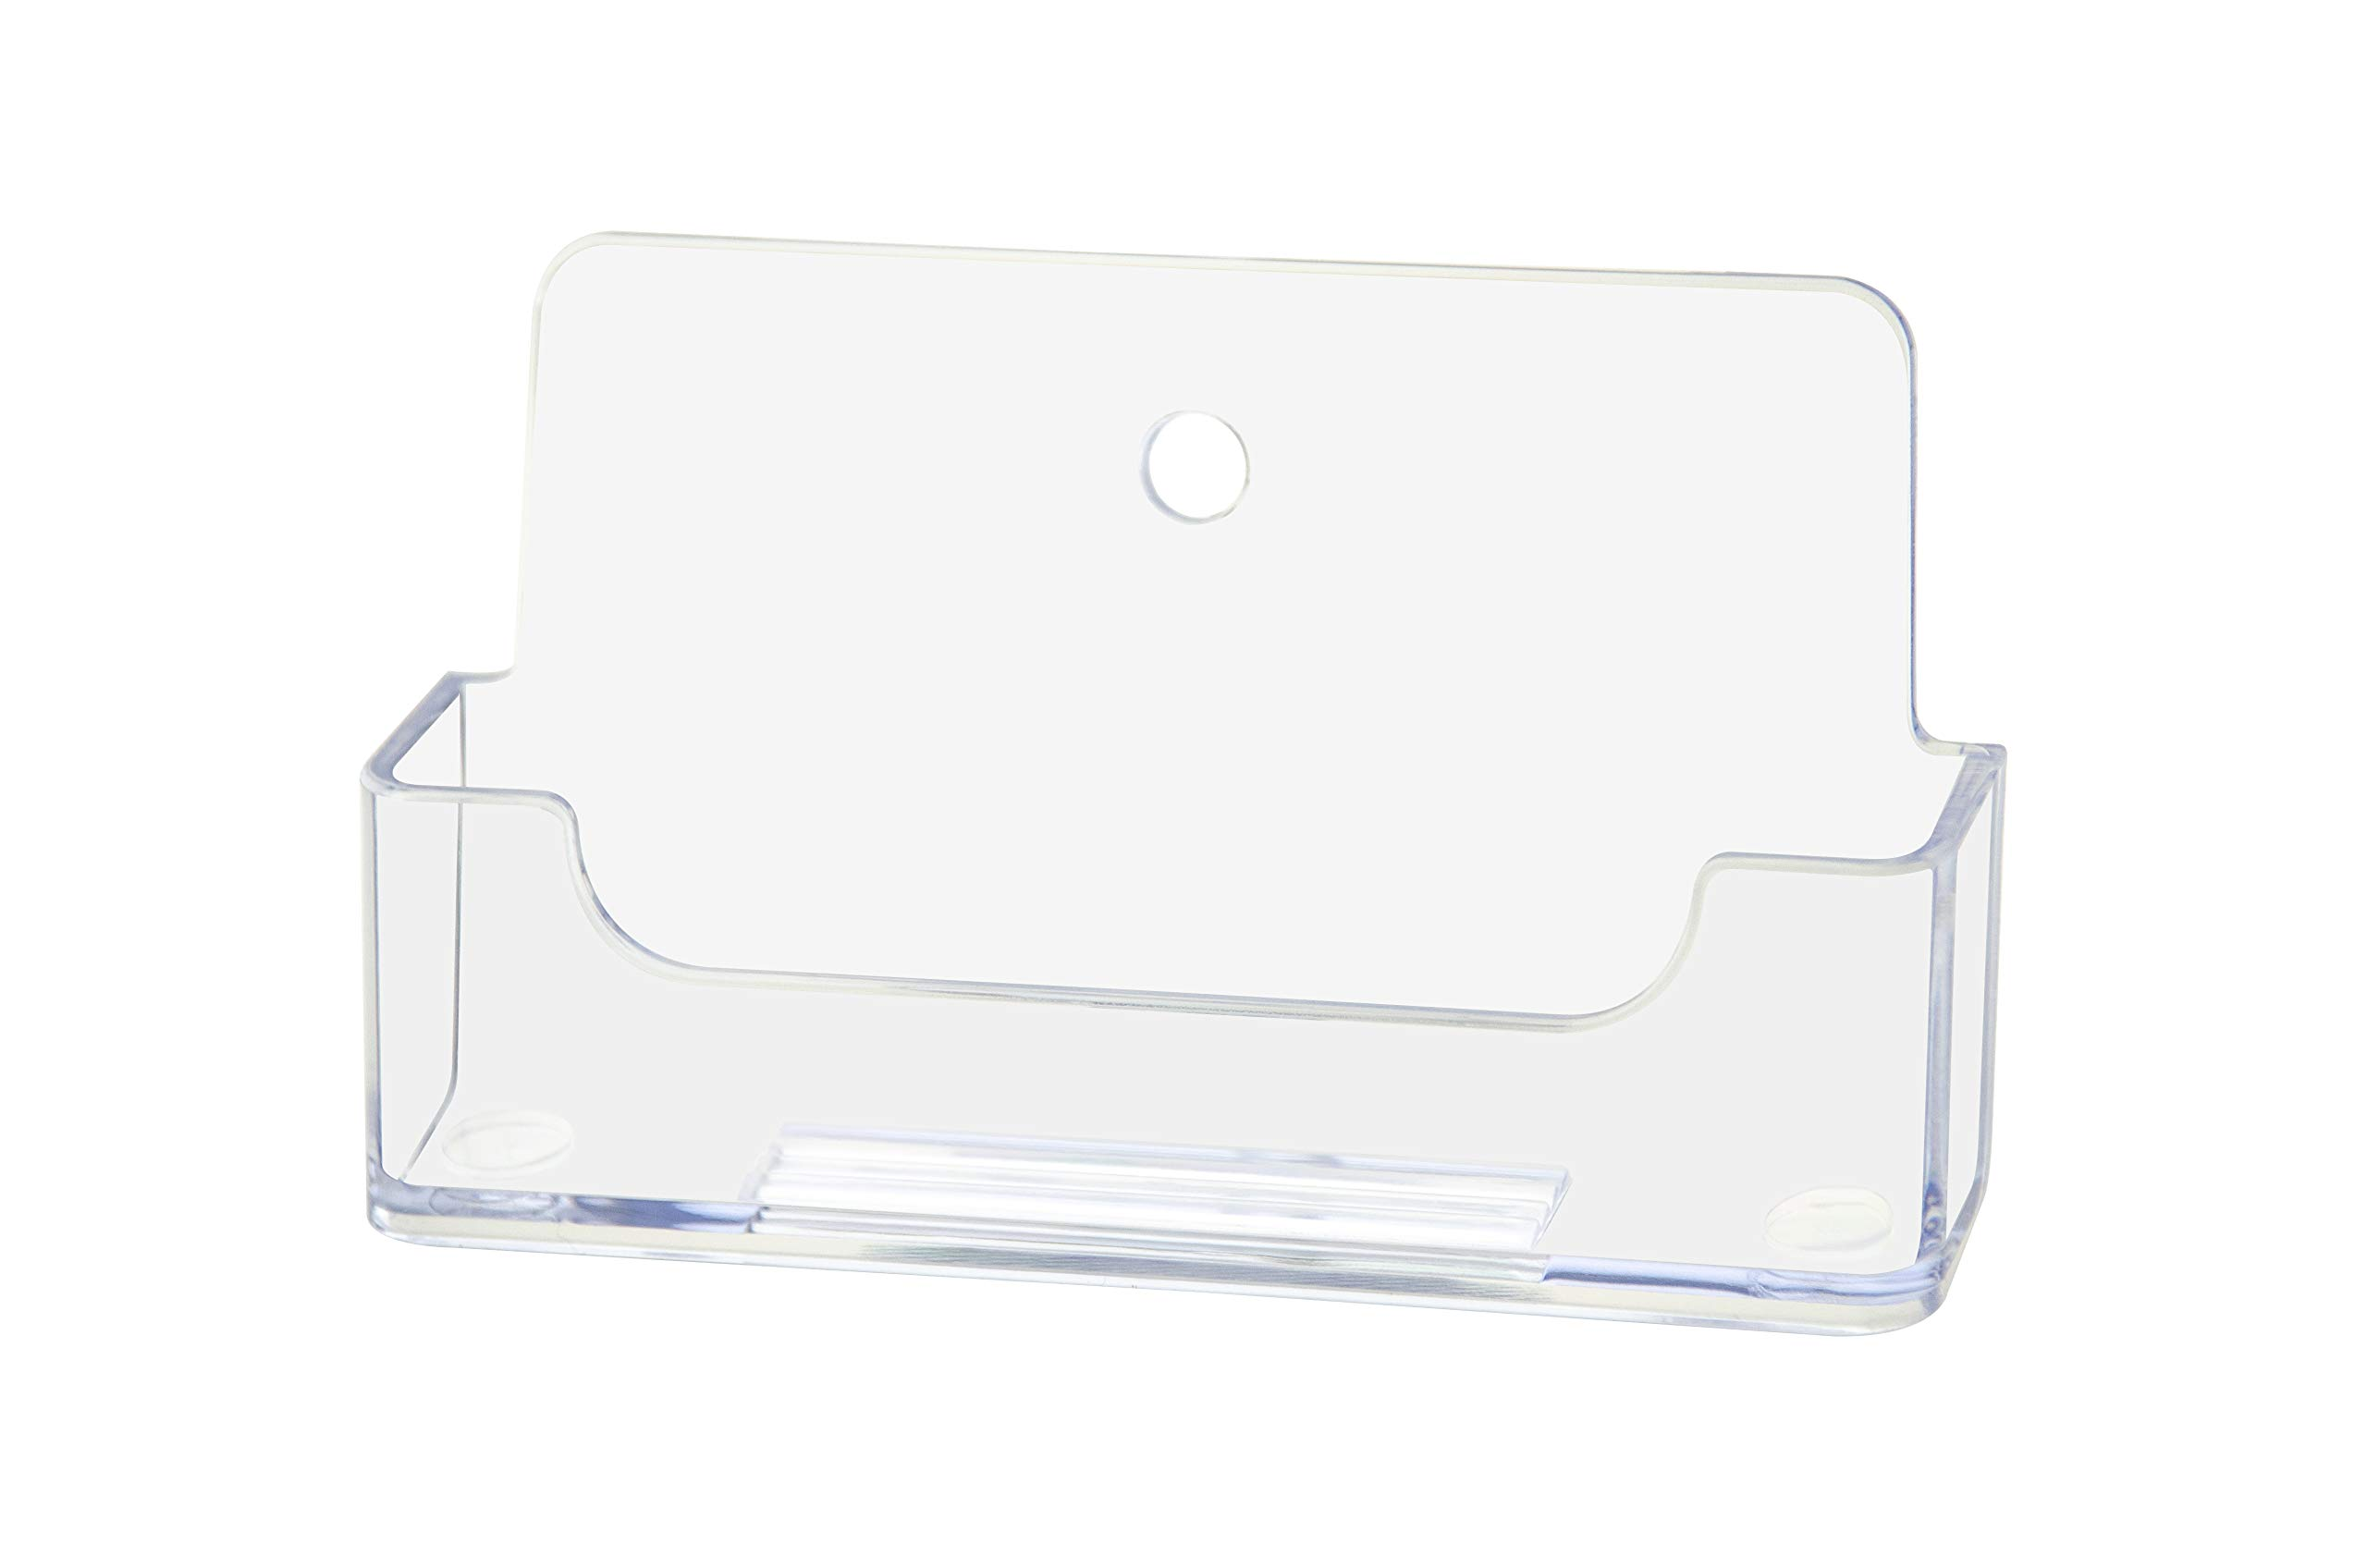 Marketing Holders Business Card Rack Single Pocket Wall Mount Gift Card Customize Display Holder Pack of 10